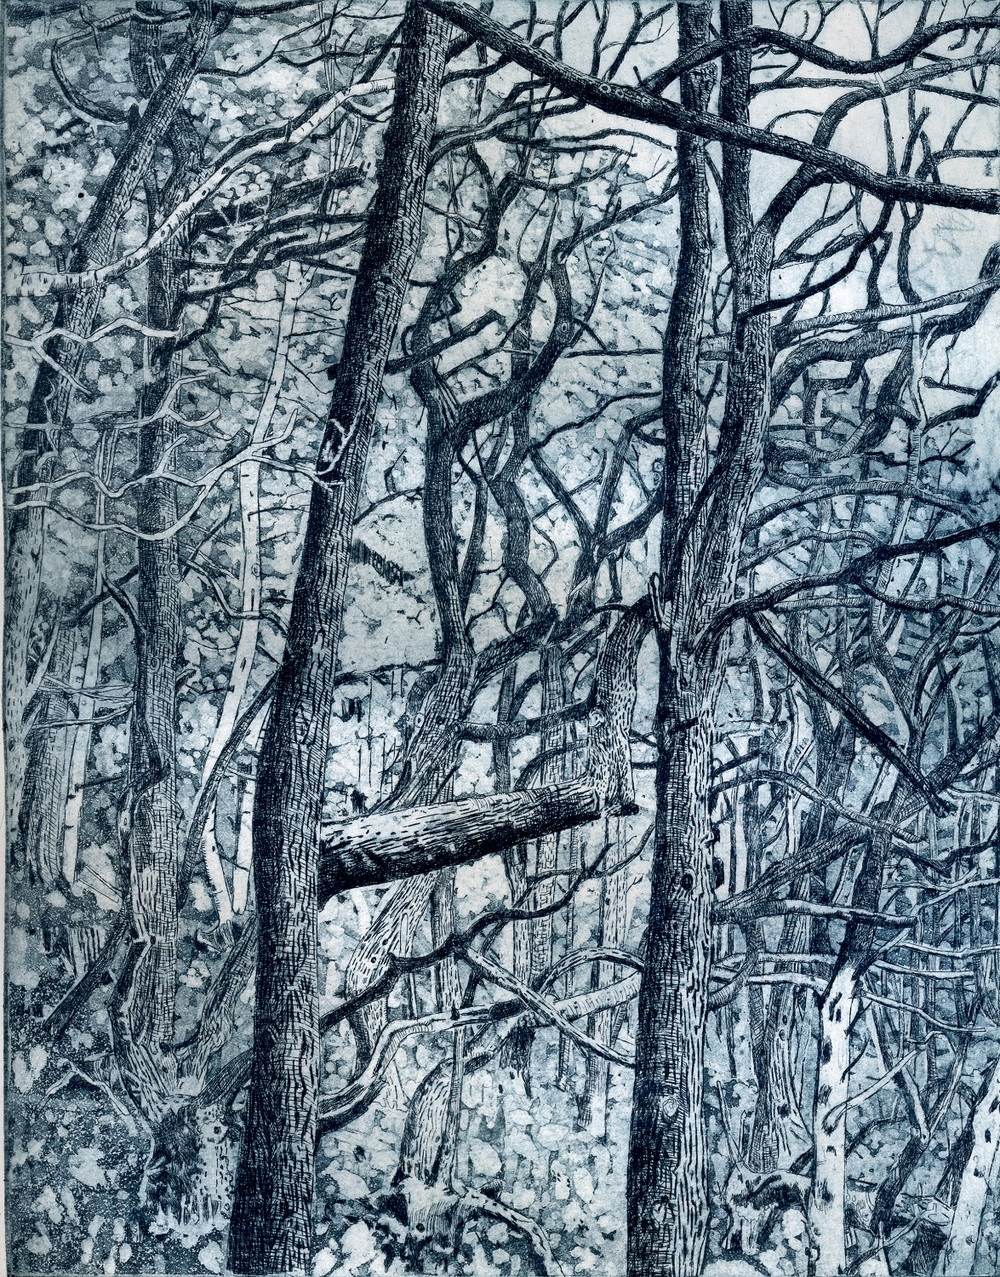 Tangled Wood   etching   19 x 25 cm   £110 (unframed)